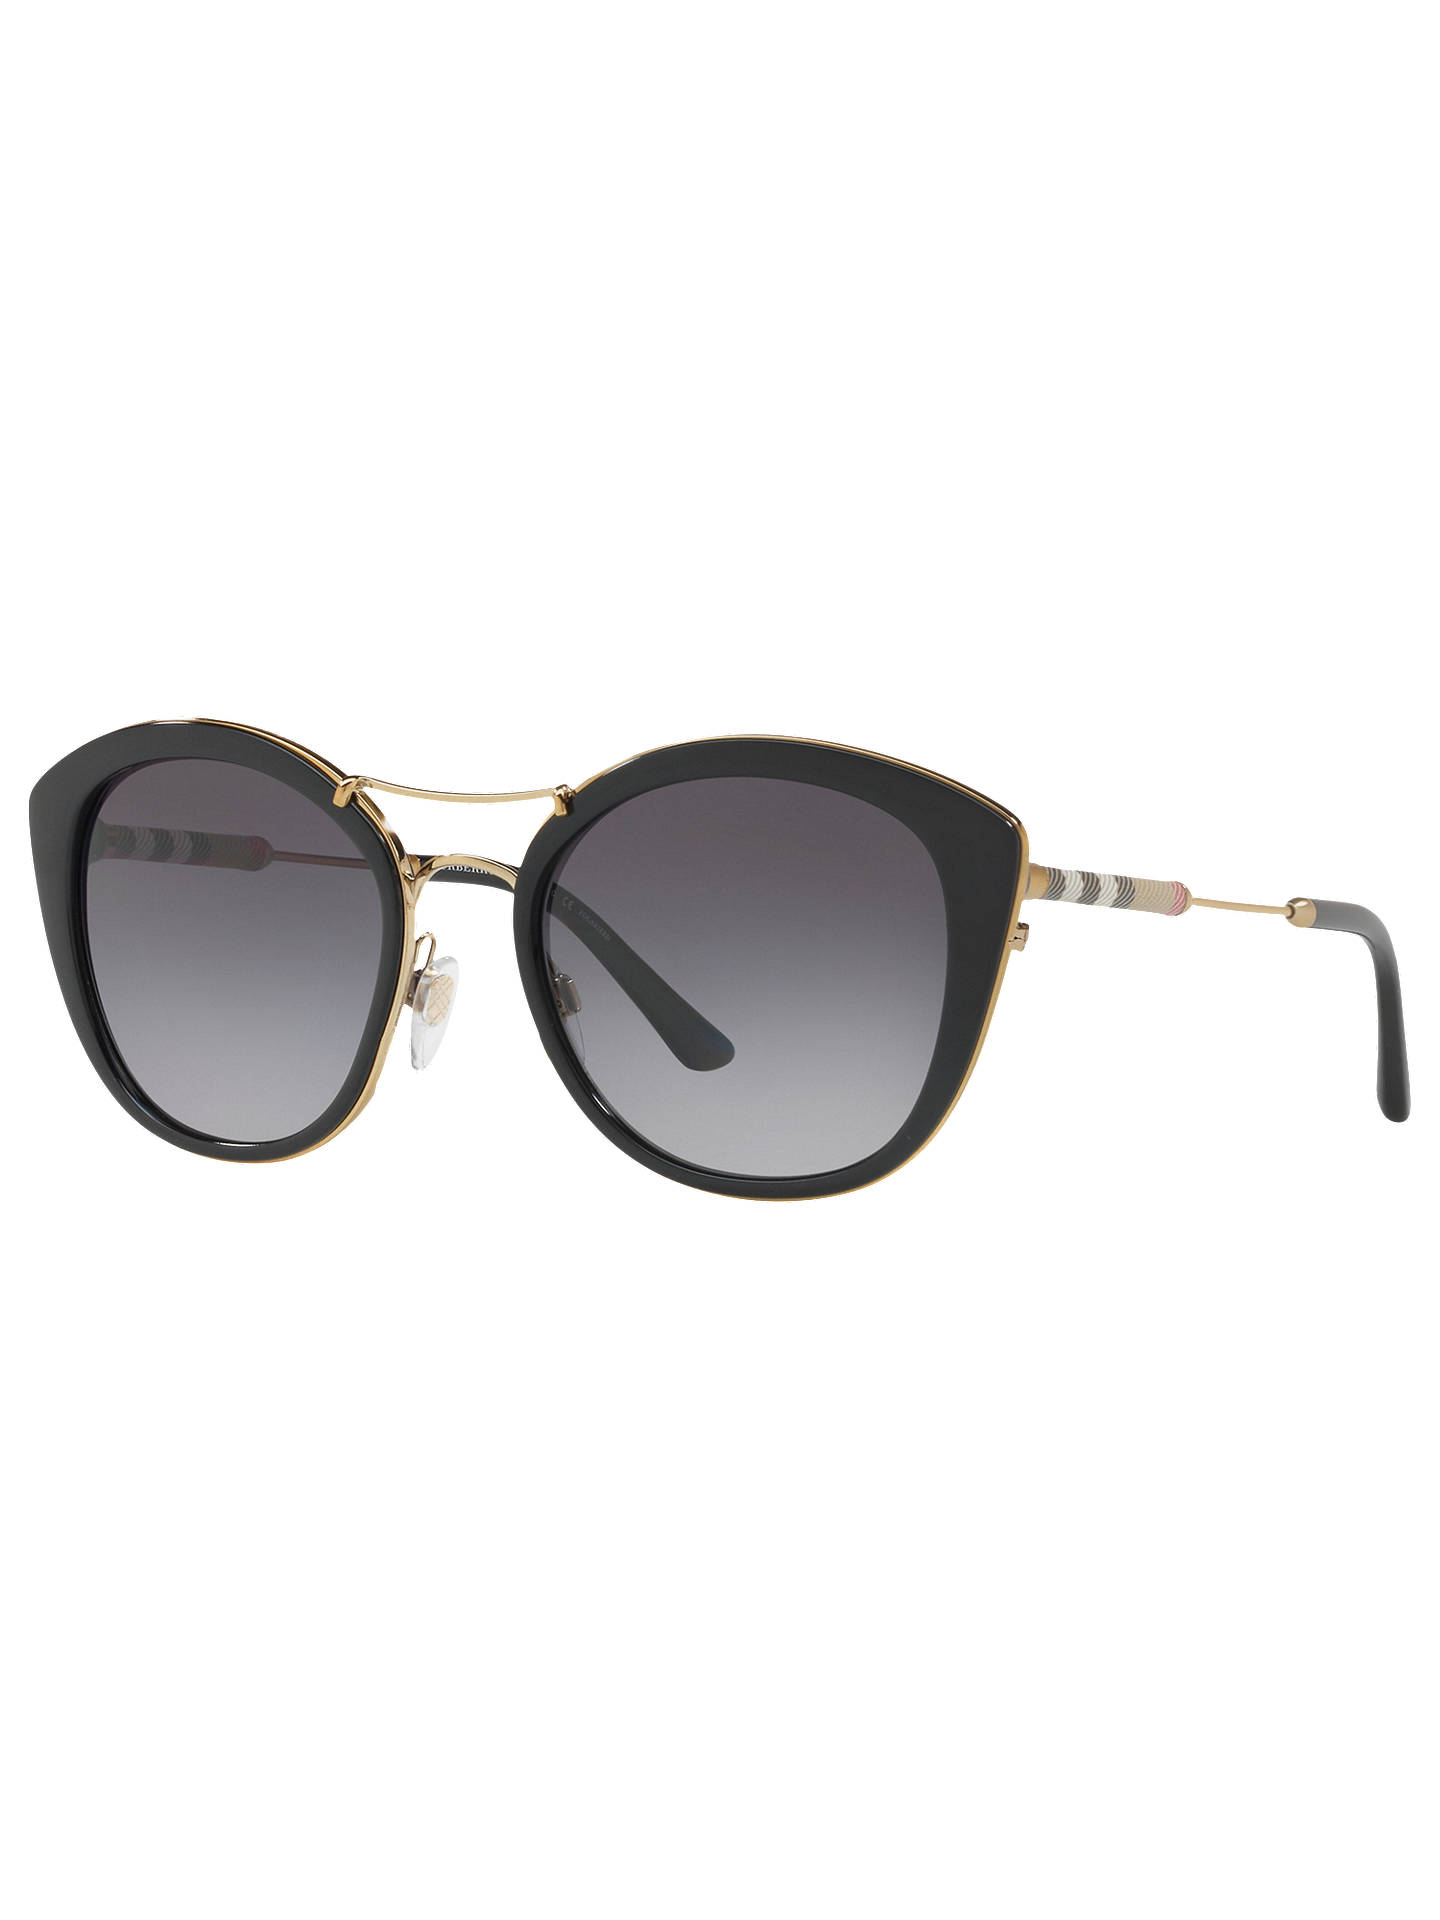 adfab1aaa2 Burberry BE4251Q Round Sunglasses at John Lewis   Partners